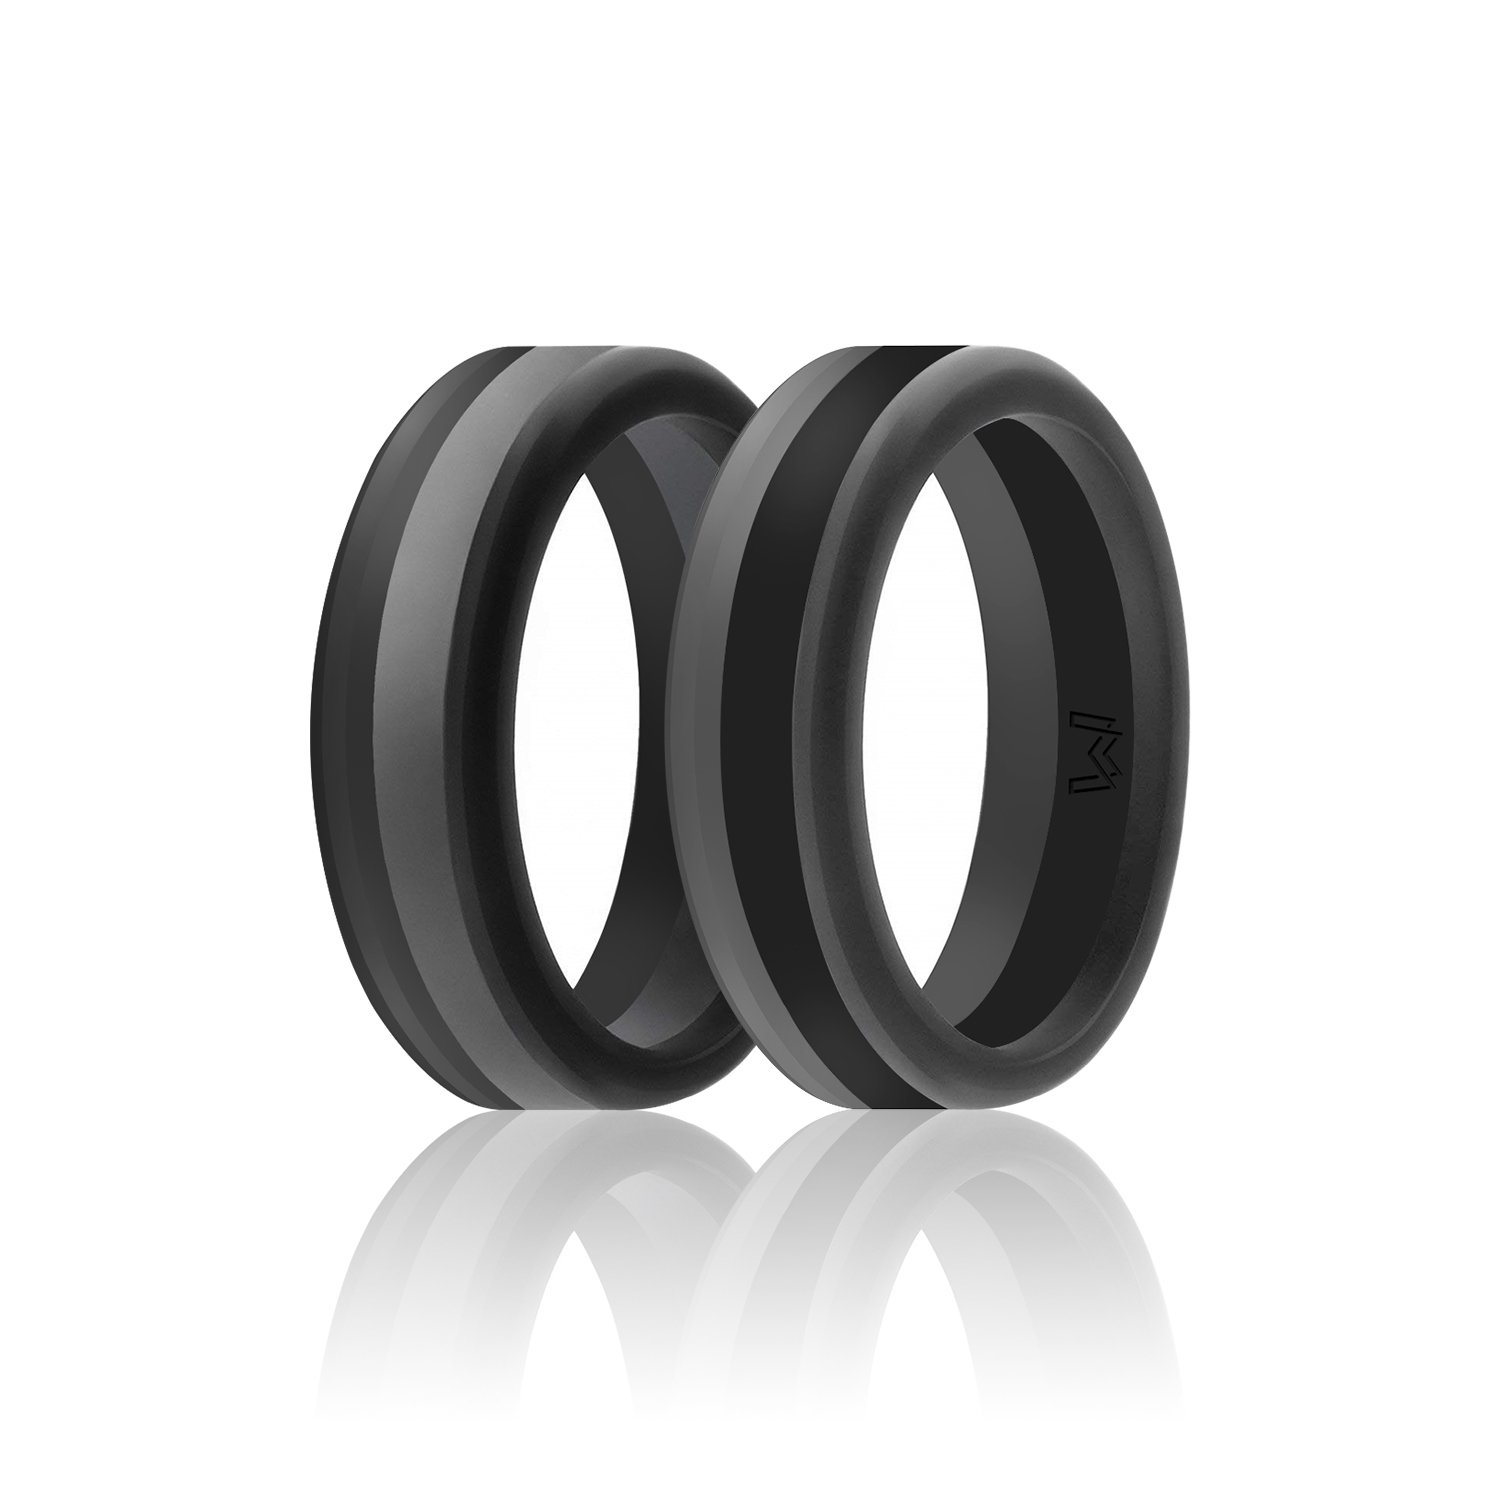 Wigerlon Mens Silicone Wedding Ring& Wedding Bands Skin Safe for Active Athletes, Workout, Military Width 8mm Pack of 2